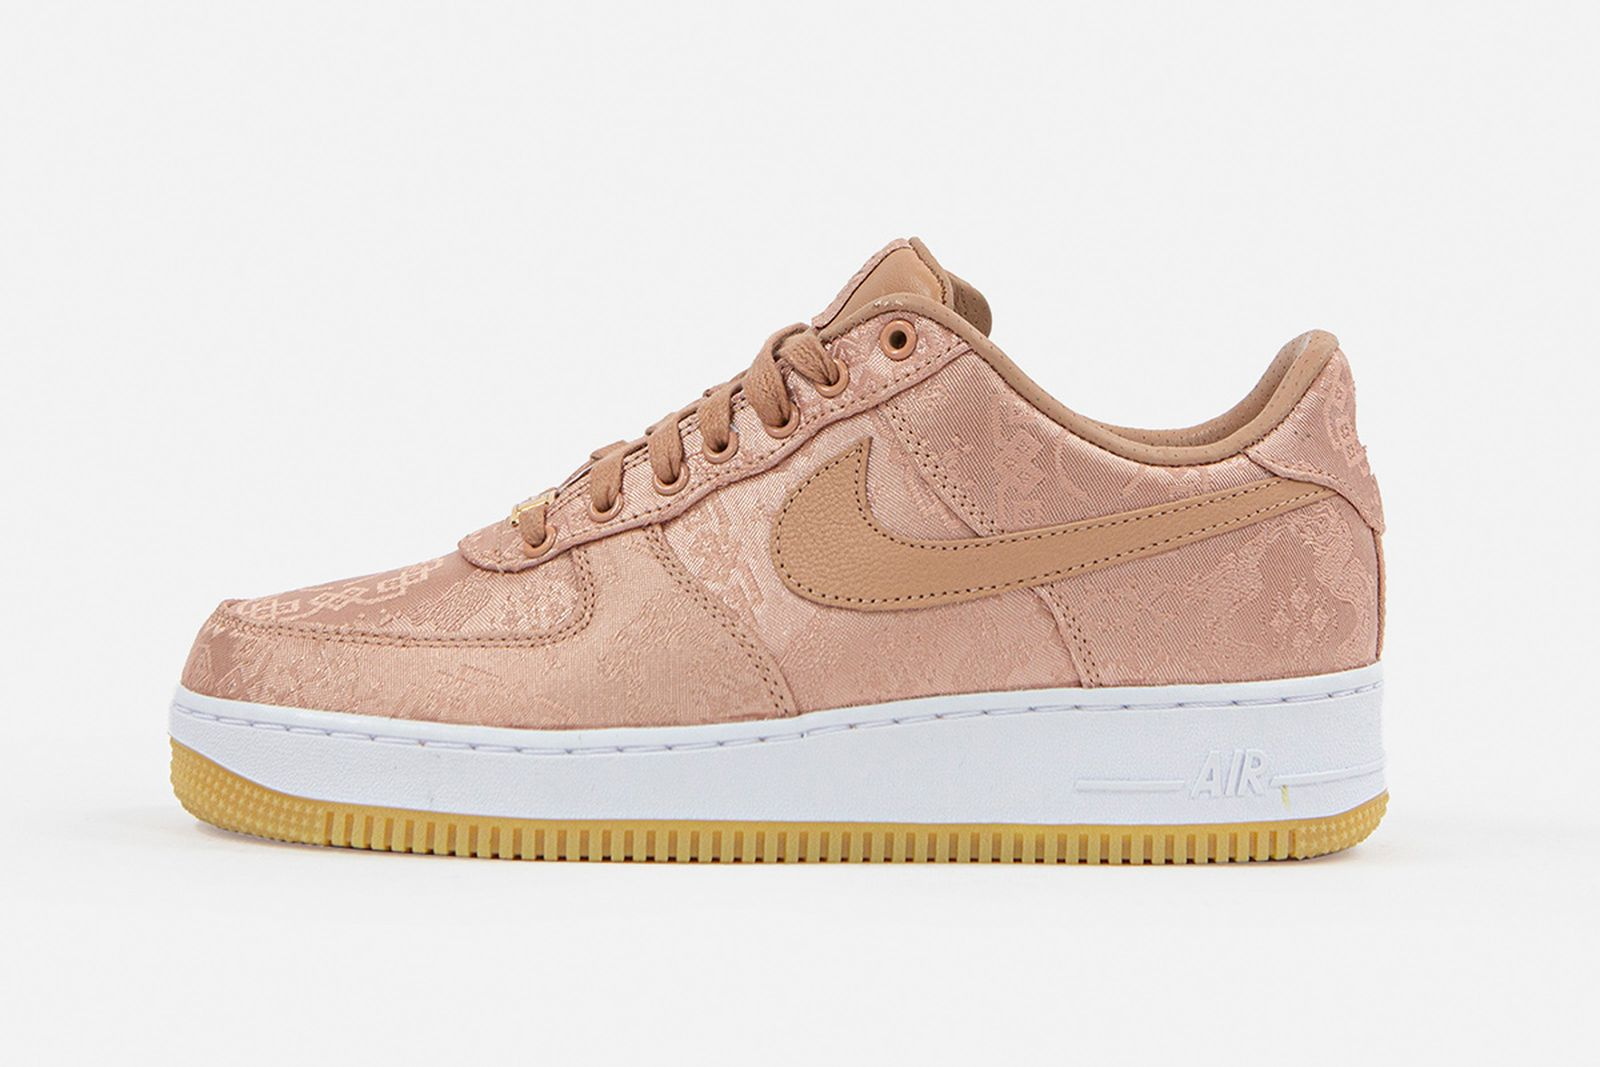 clot-nike-air-force-1-rose-gold-release-date-price-product-02